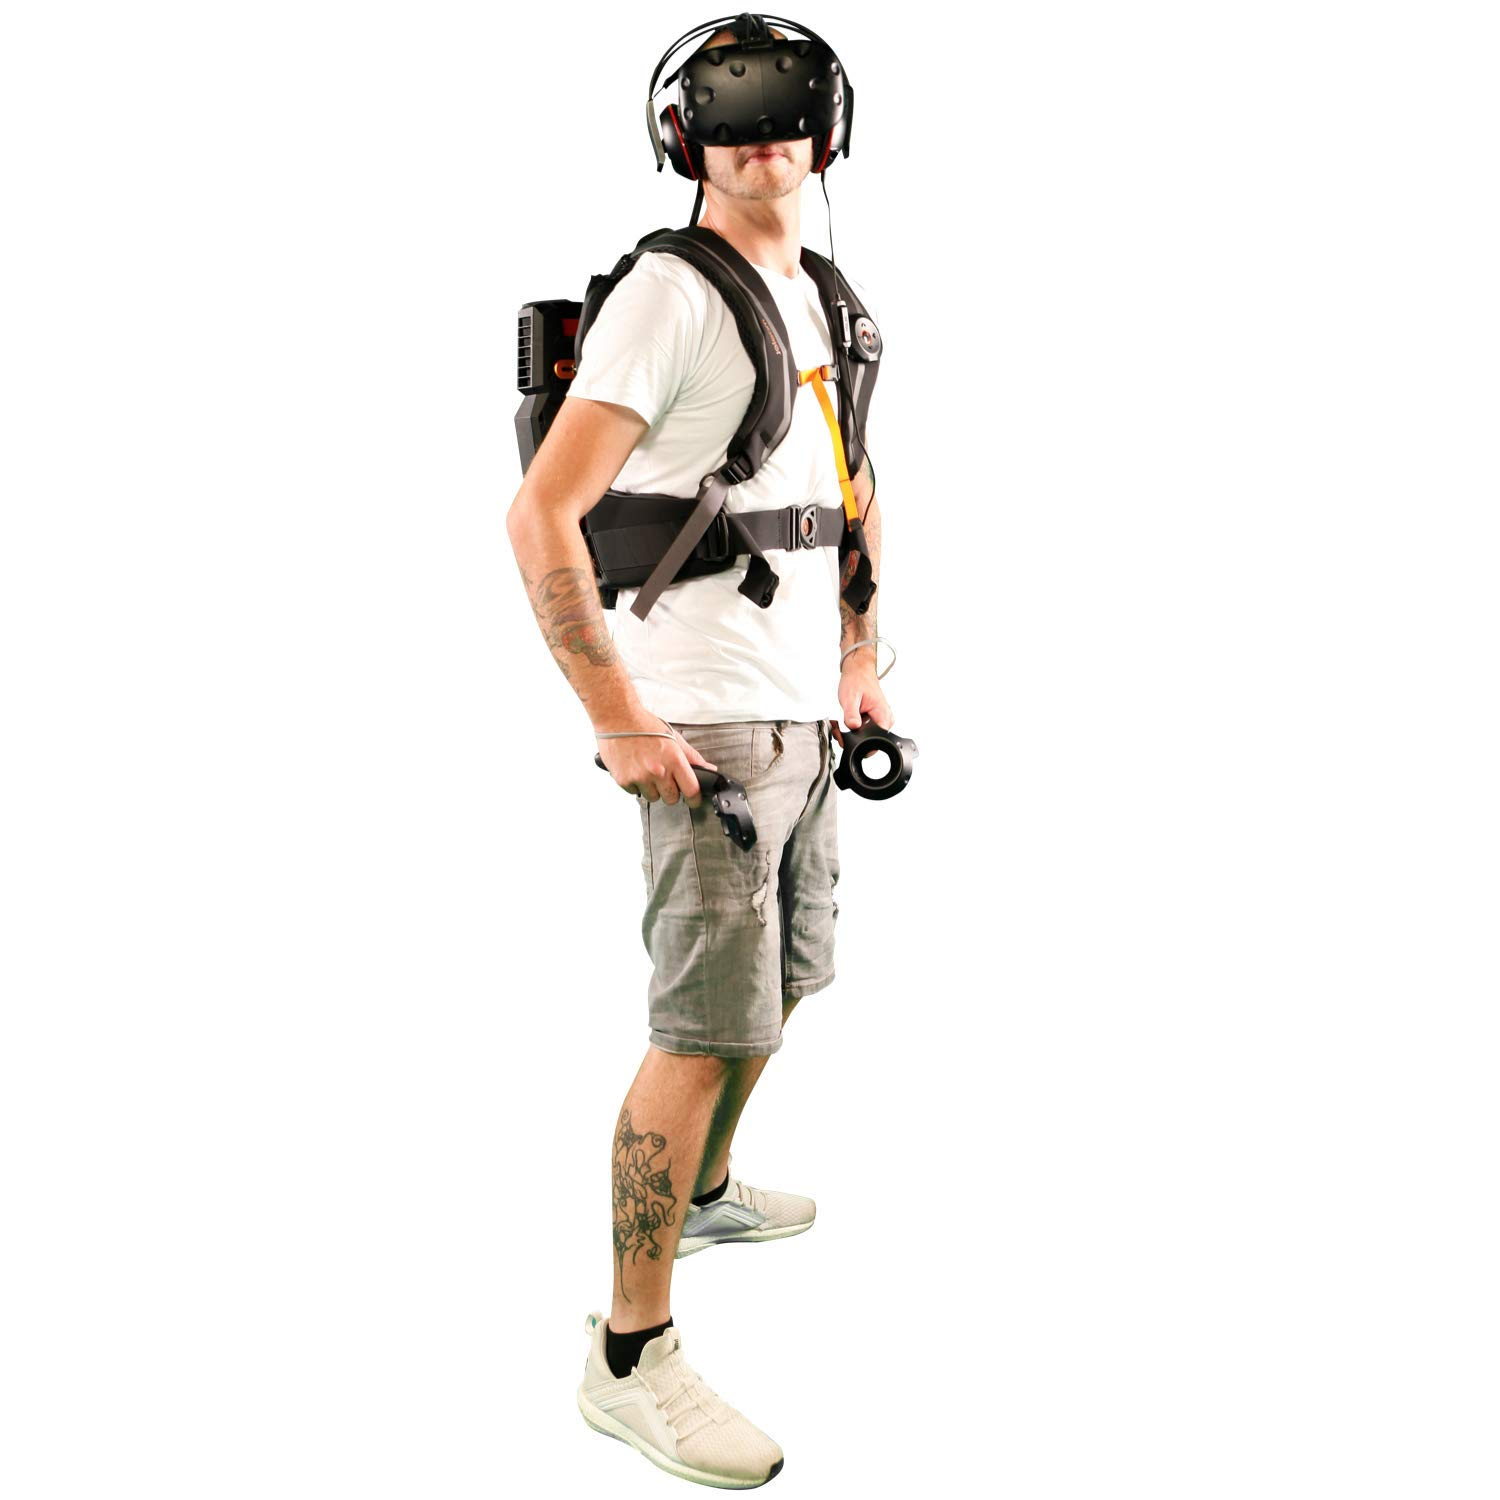 Woojer Vest Pro: Powerful Location-Specific Haptic Vest ...